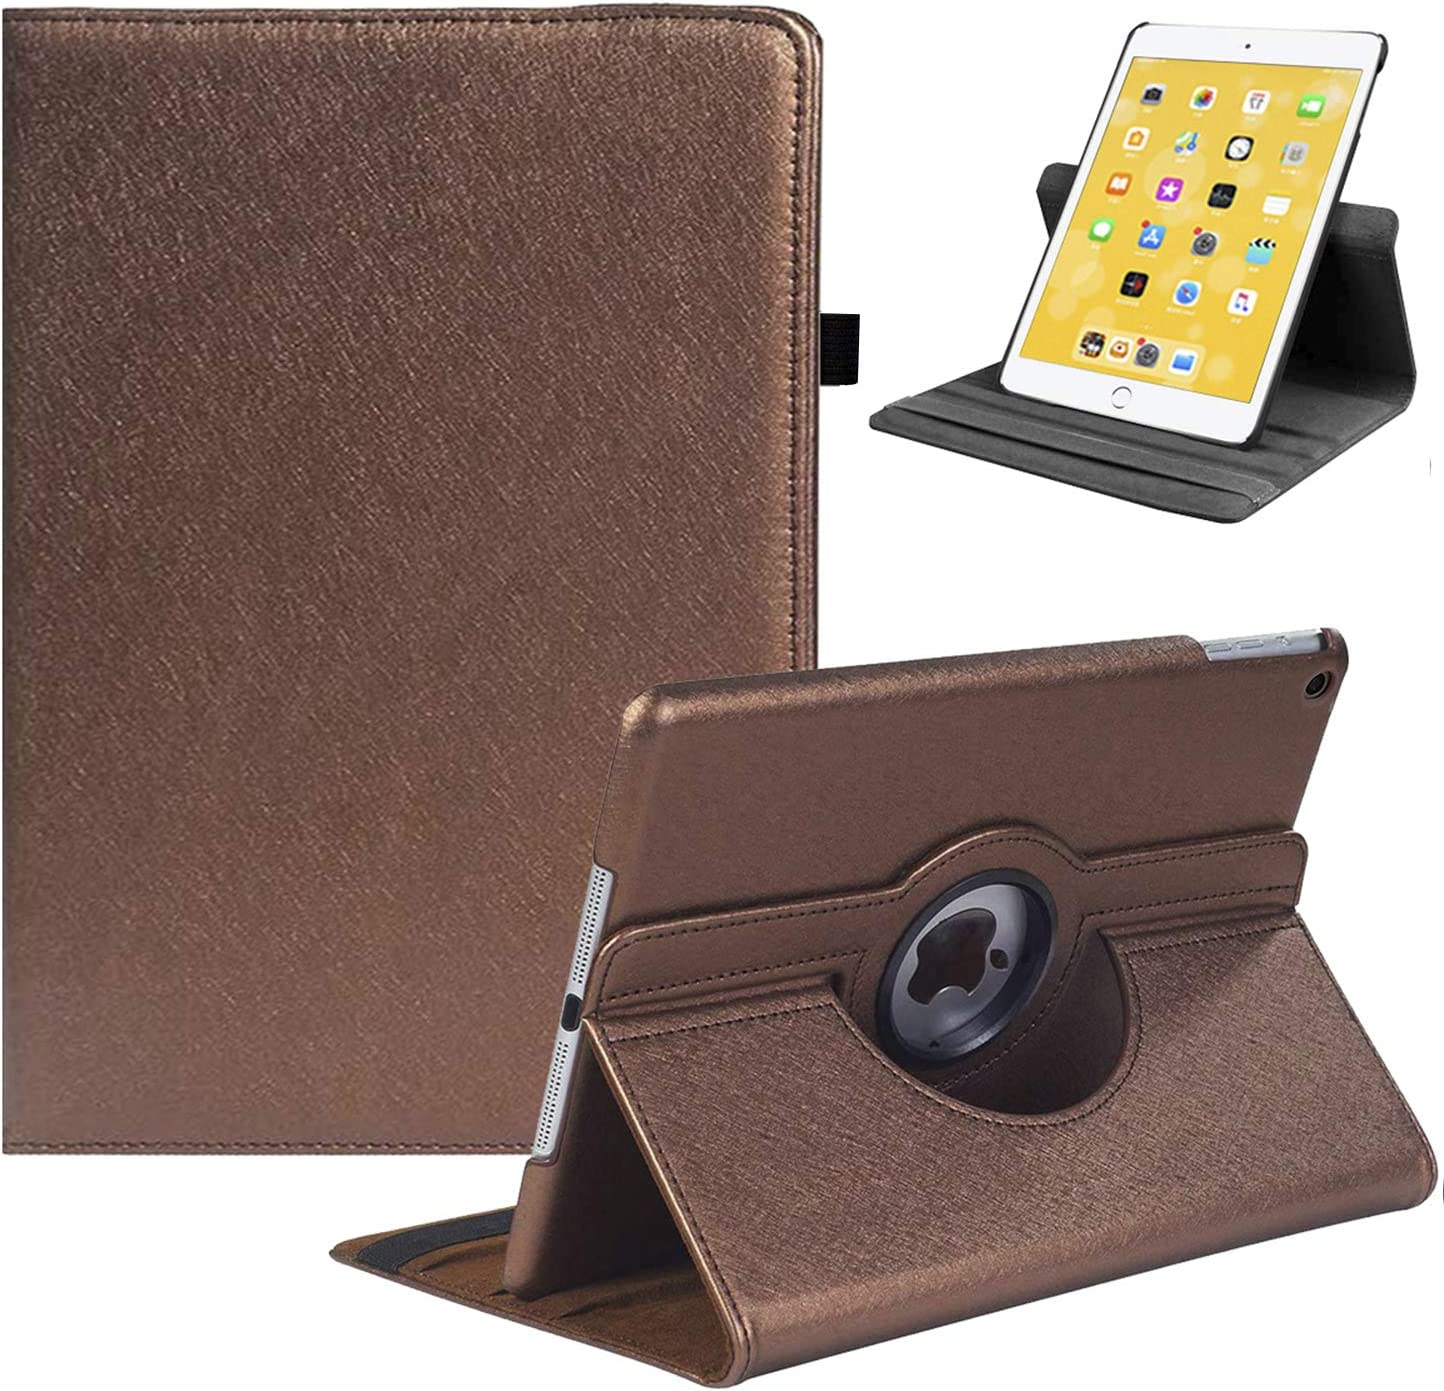 """LRCXL New iPad 8th Generation Case 2020, iPad 7th Generation Case 2019 - 360 Degree Rotating Stand Protective Cover with Auto Sleep Wake for Apple iPad 10.2""""(Brown)"""